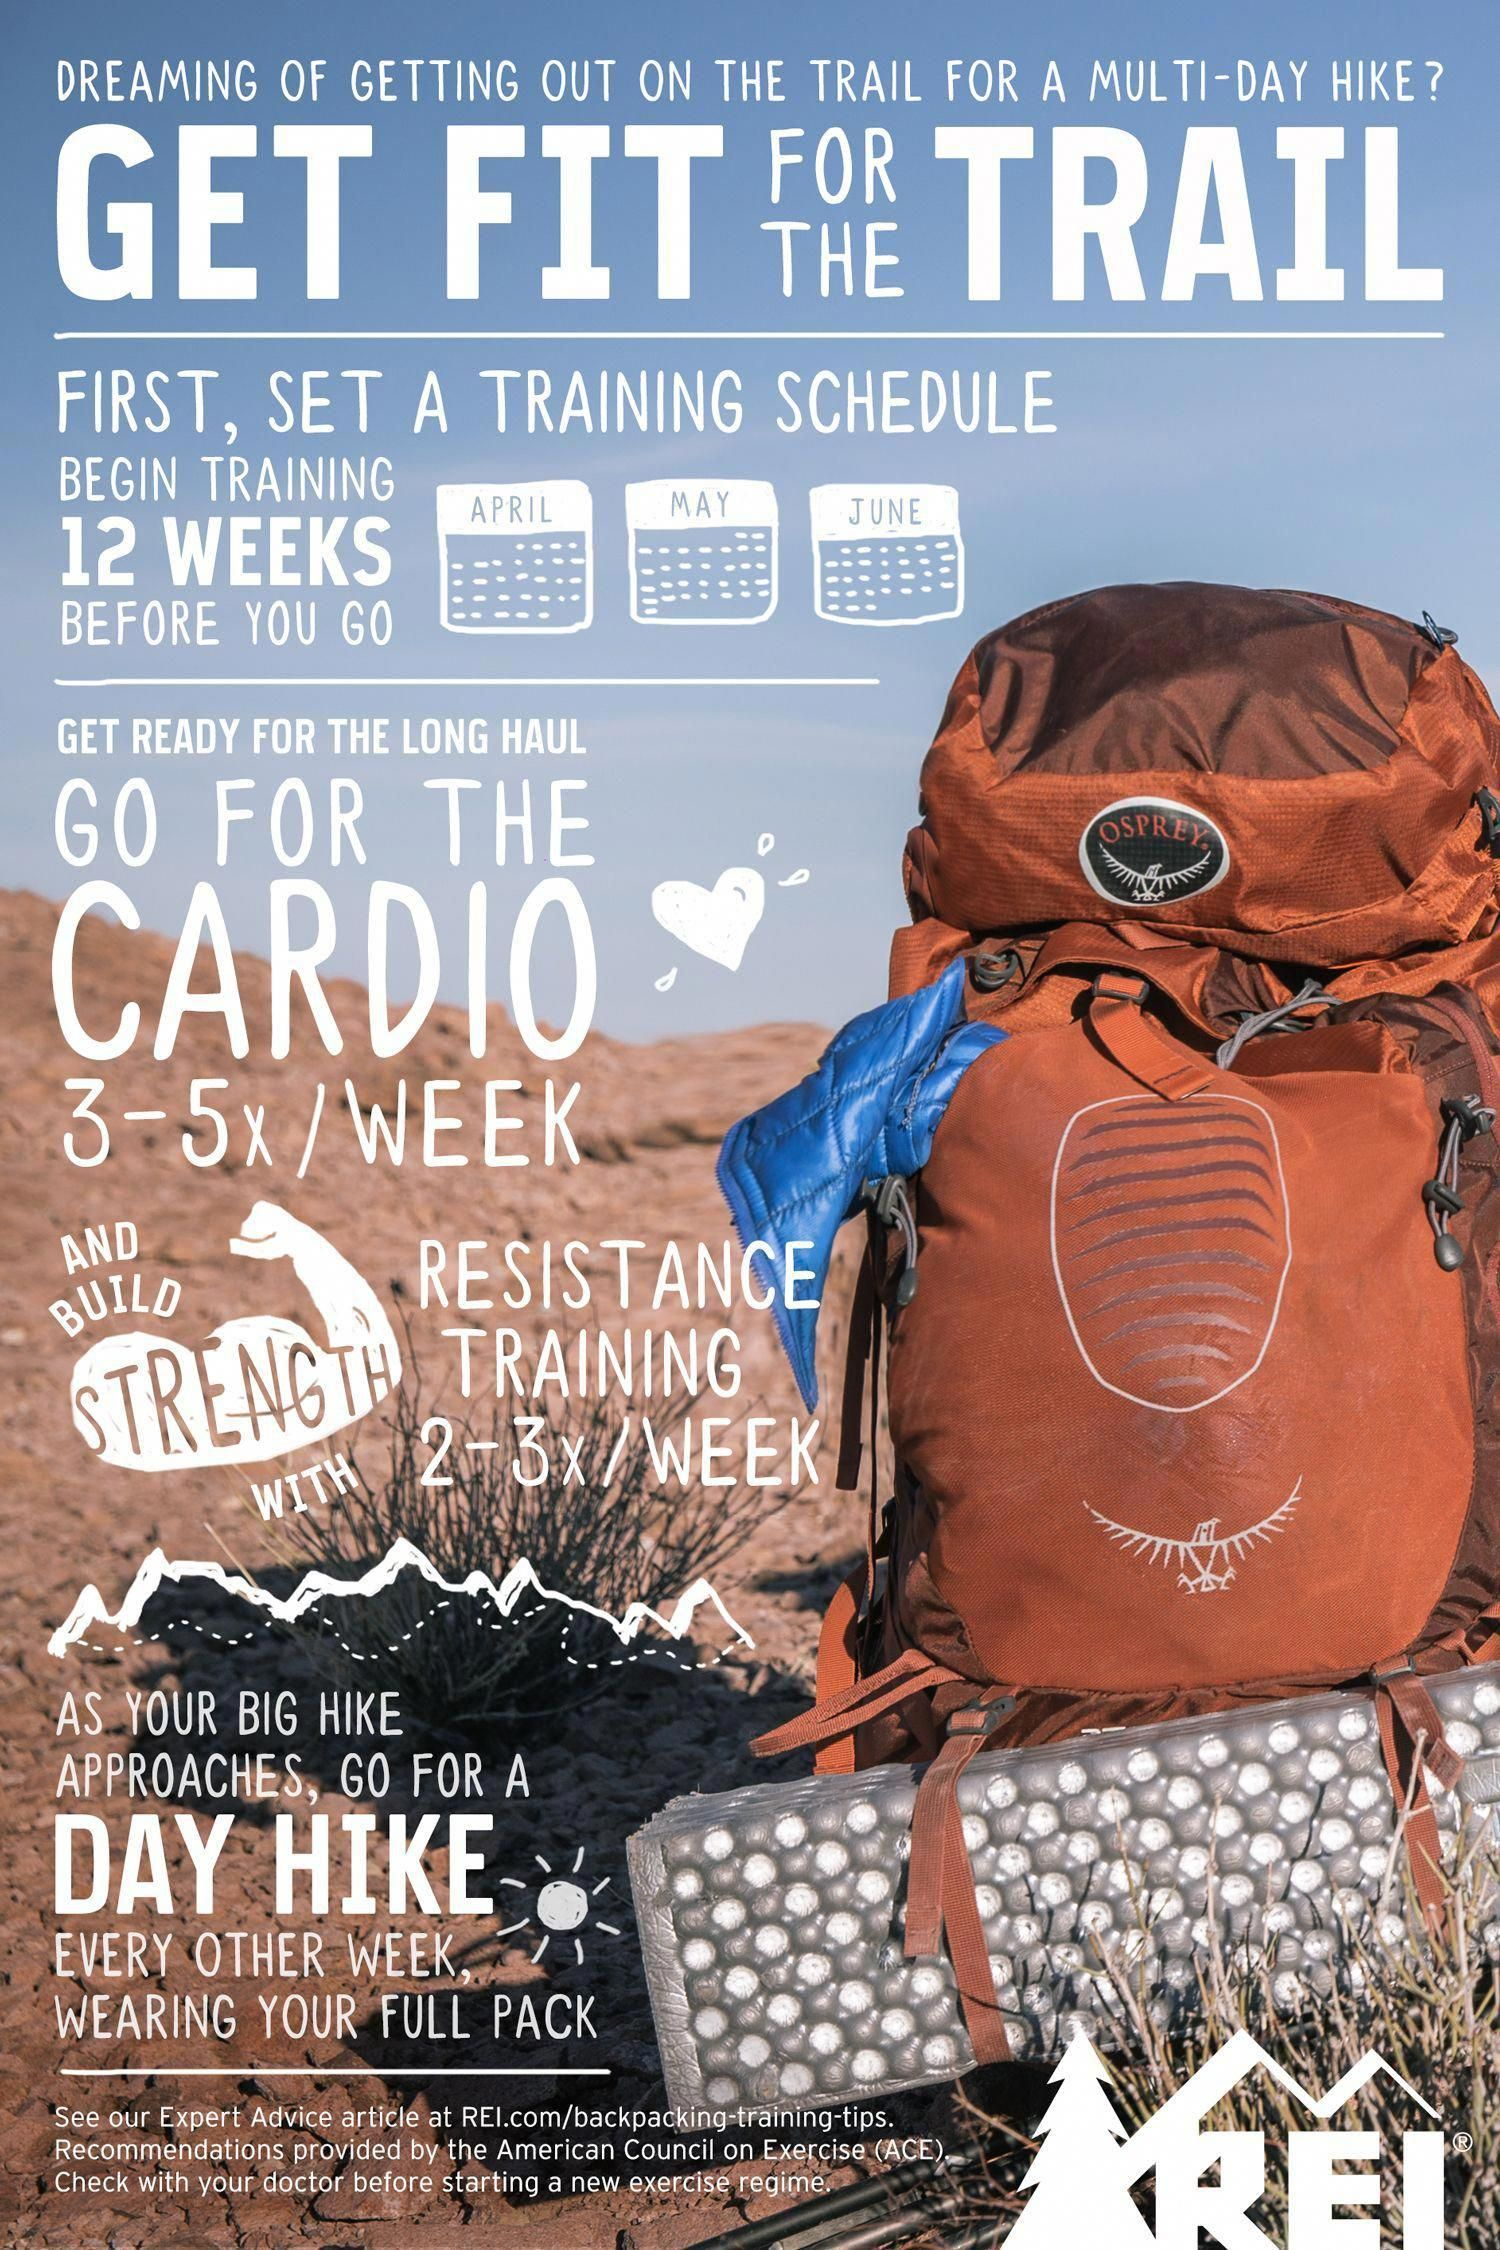 Photo of Thru-Hiking: Training Tips and Exercises #Hiking #outdoorpartyphotography